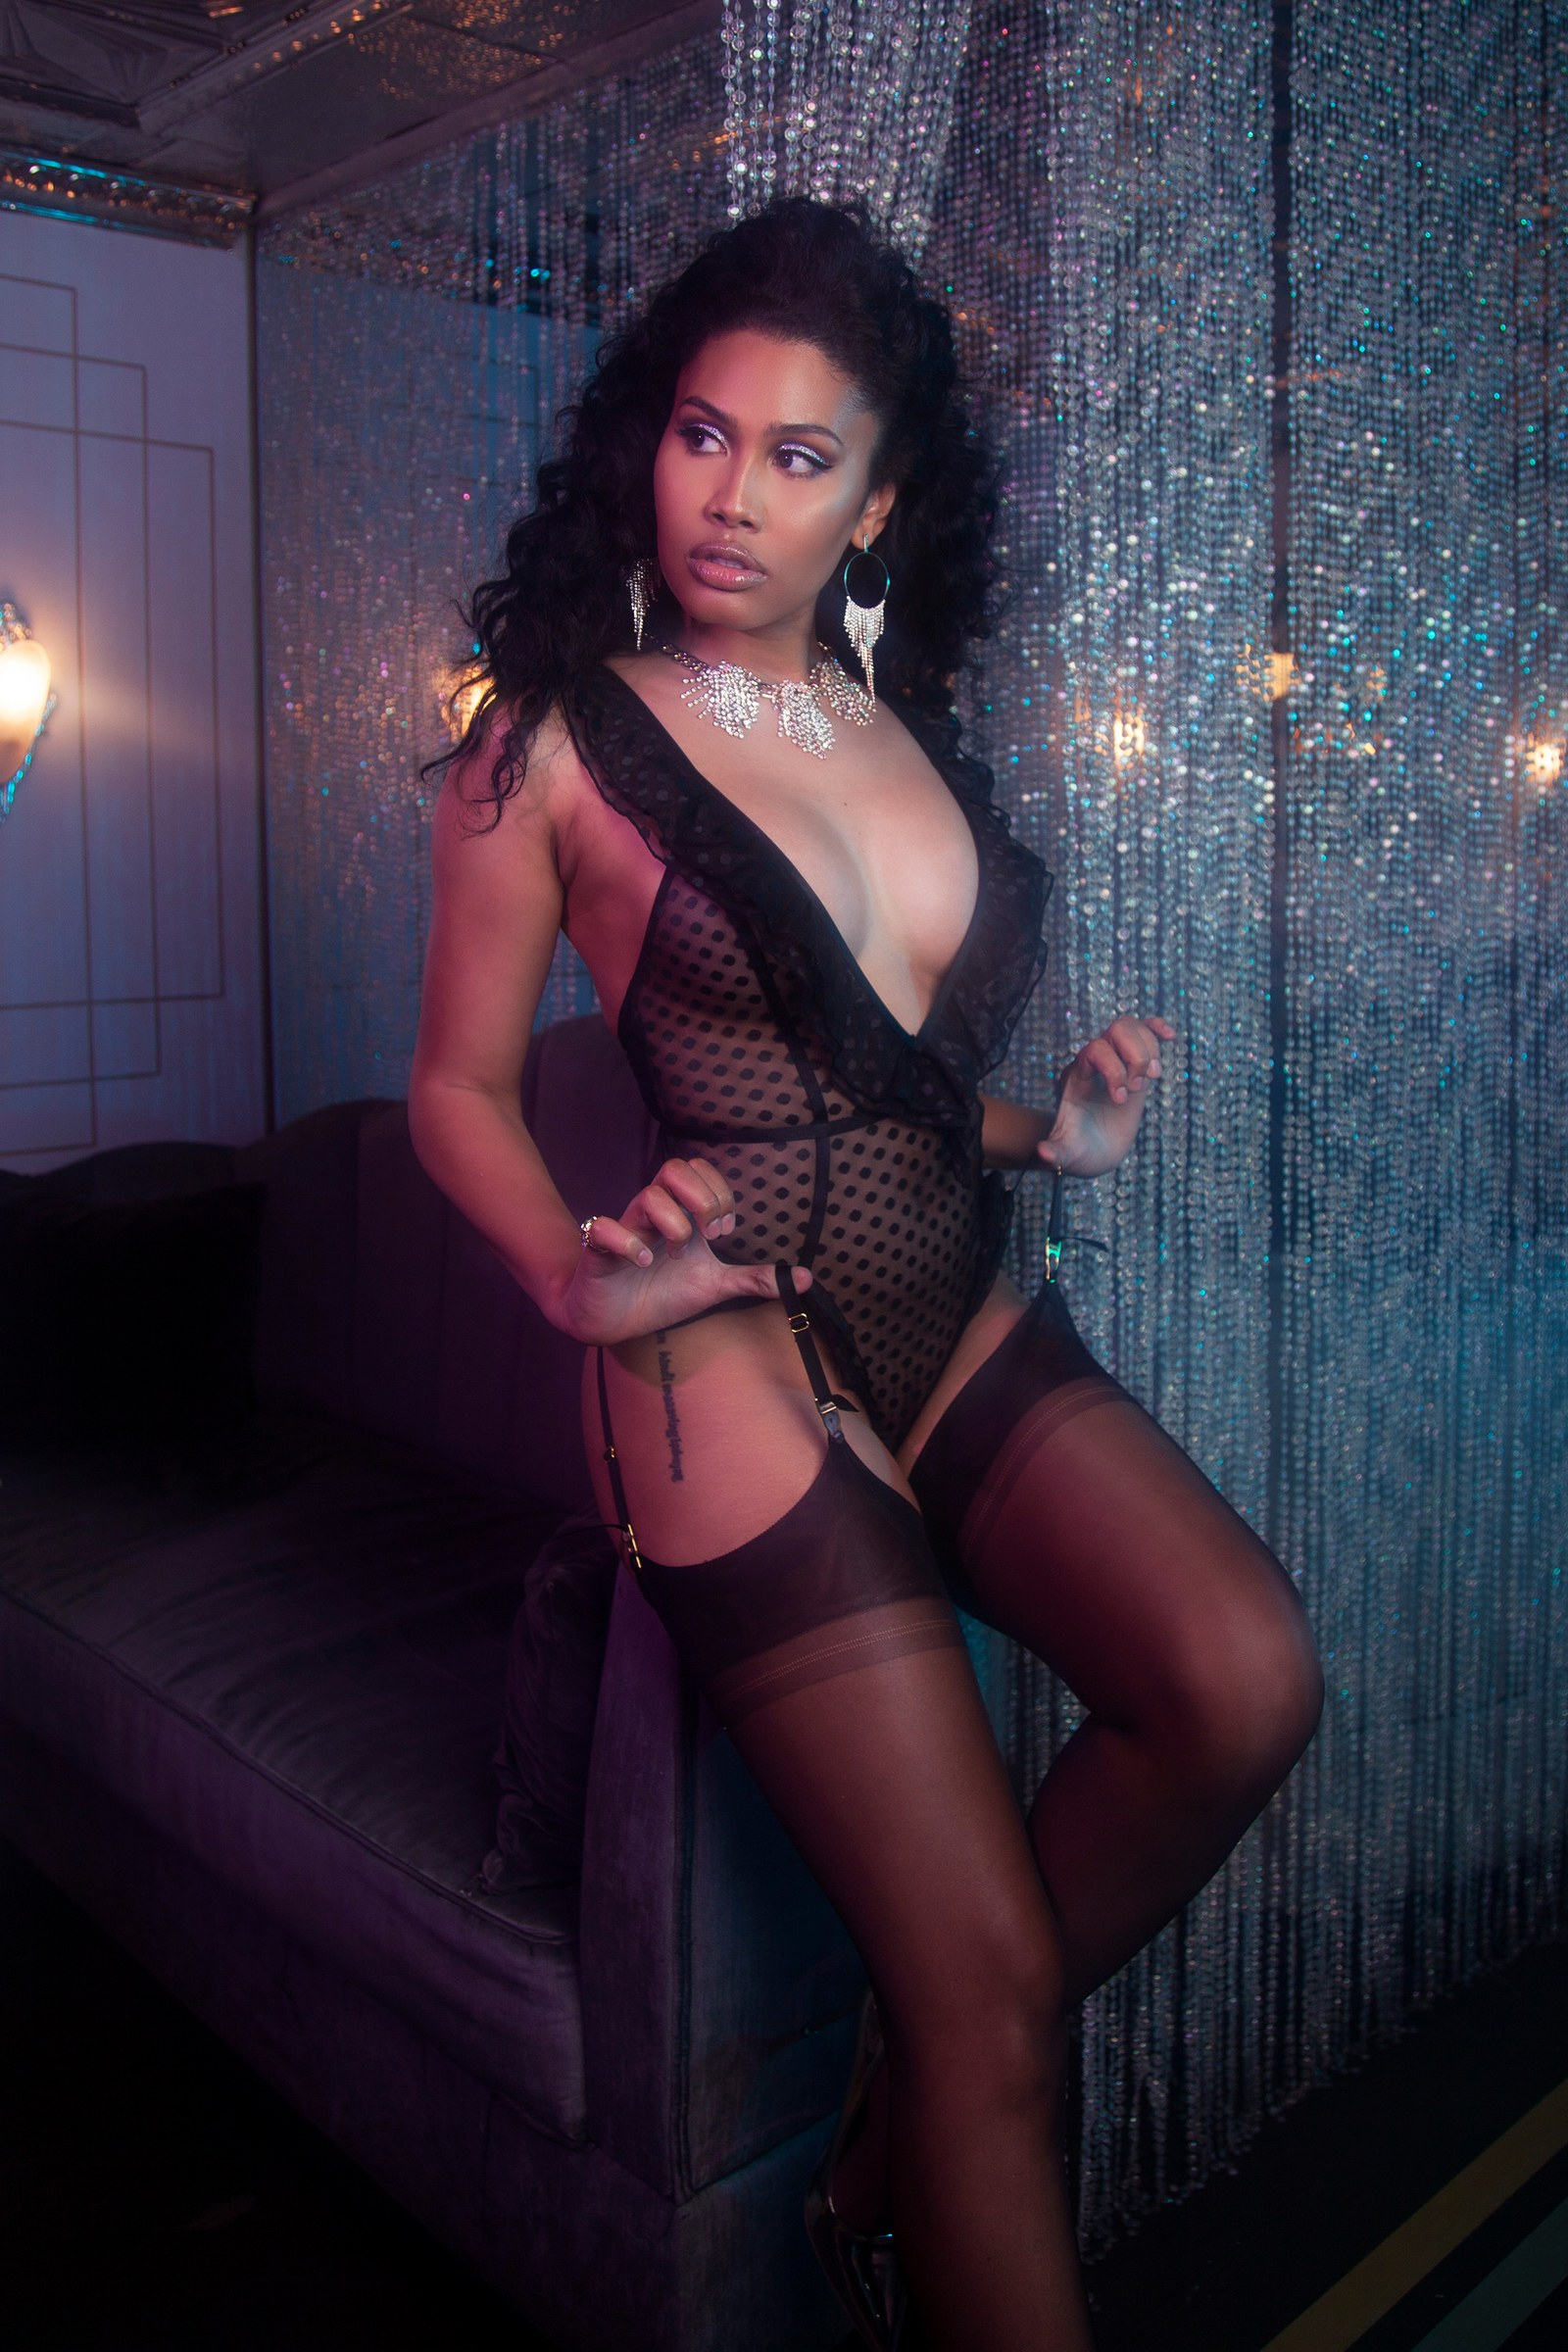 woman posing in a black sheer bodysuit and stockings